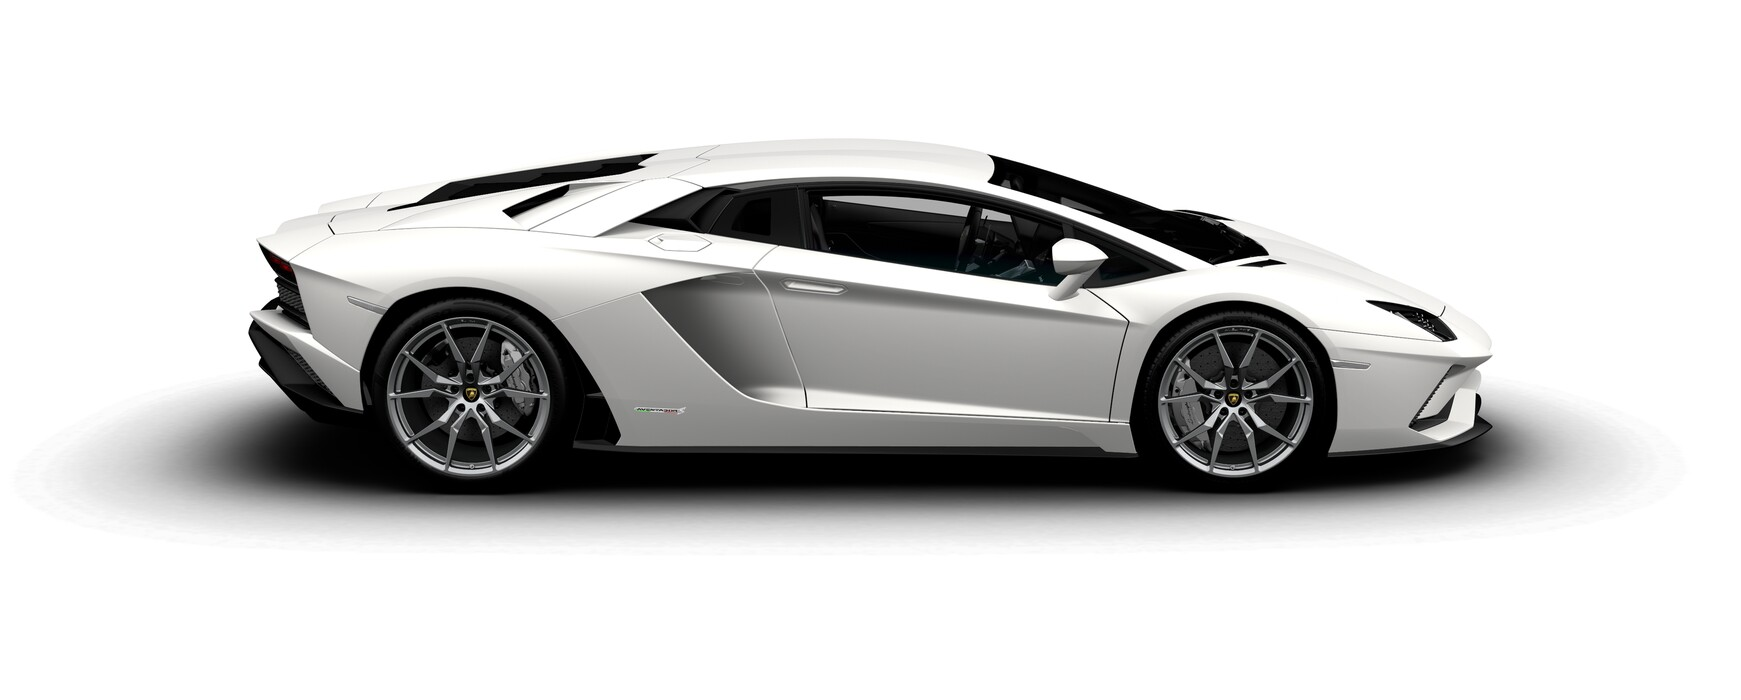 What Colors Can You Get The Aventador S In Lamborghini Palm Beach